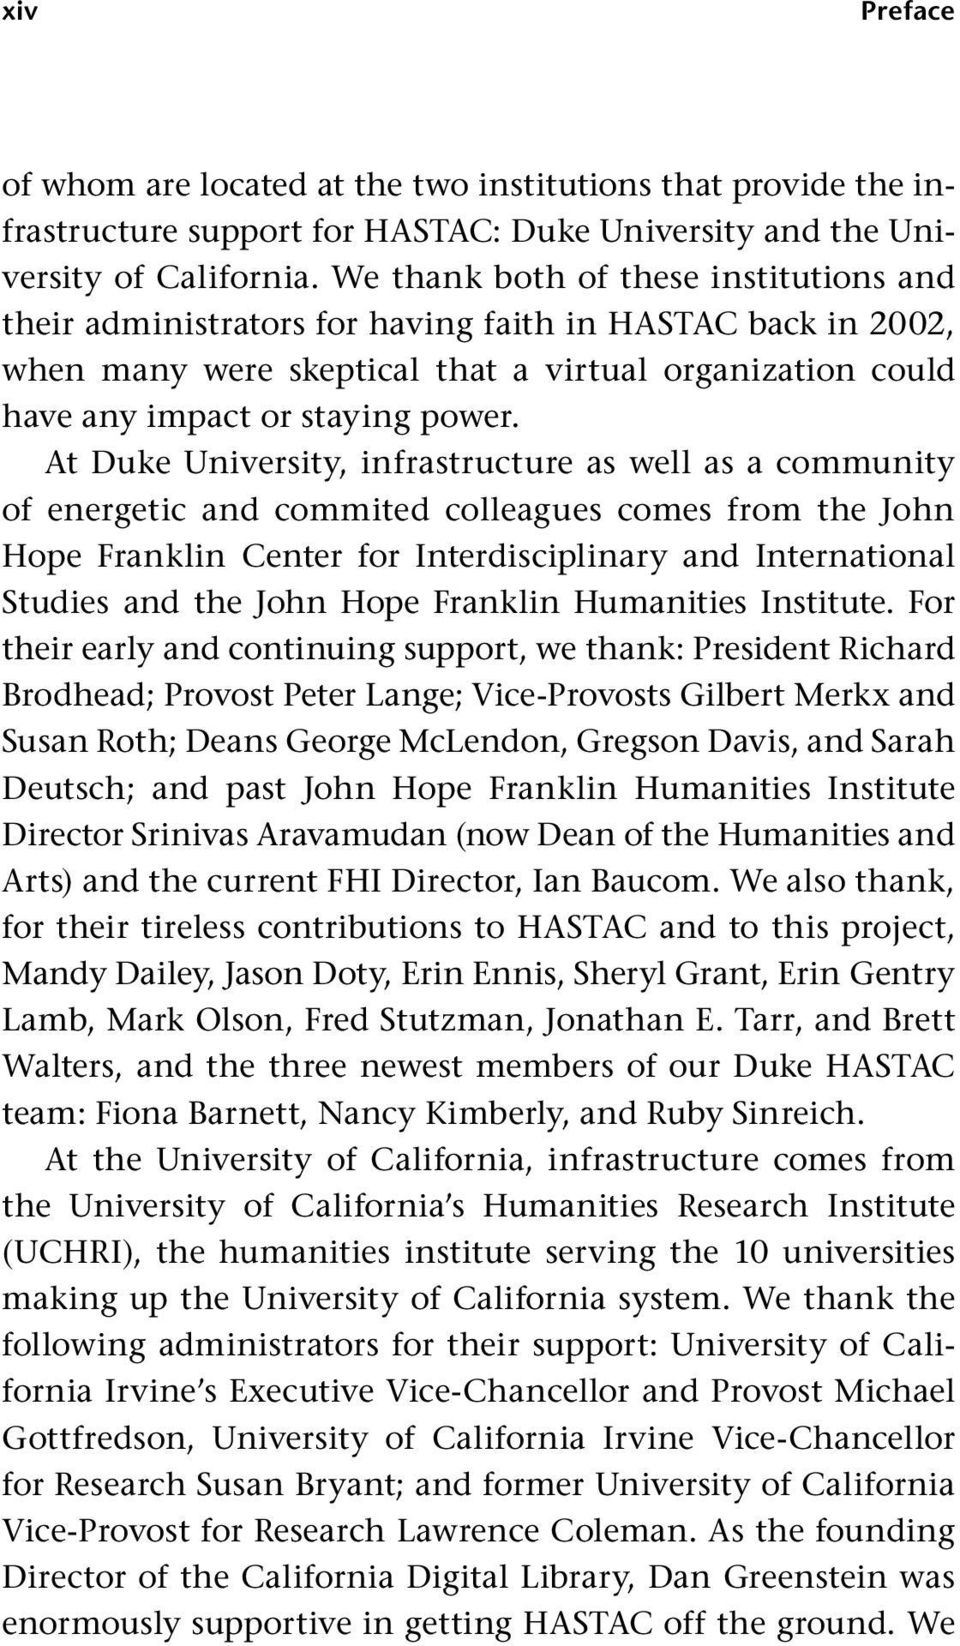 At Duke University, infrastructure as well as a community of energetic and commited colleagues comes from the John Hope Franklin Center for Interdisciplinary and International Studies and the John